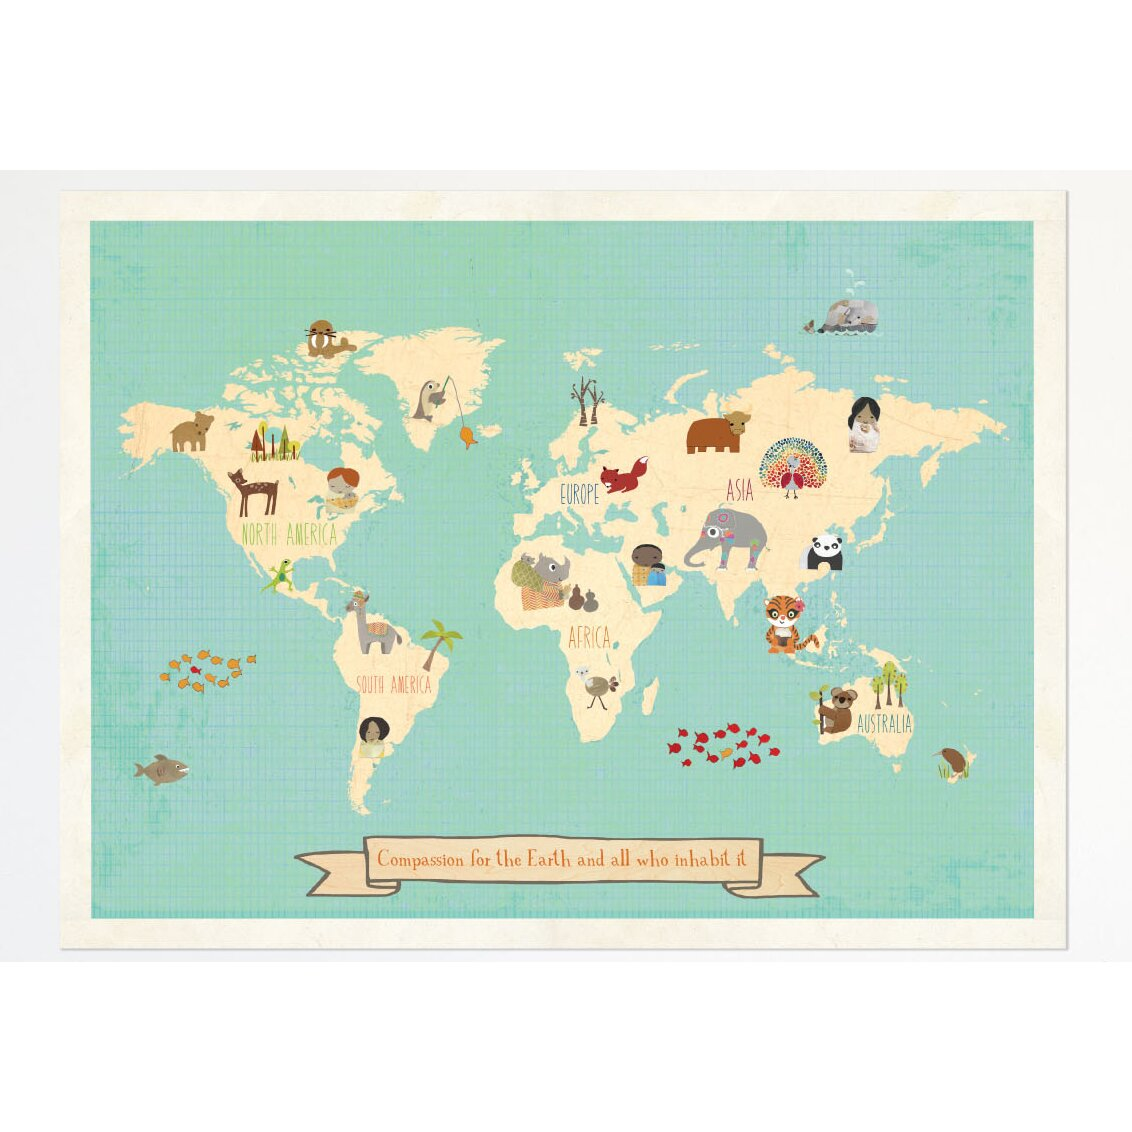 Children inspire design global compassion world map for World map wall print